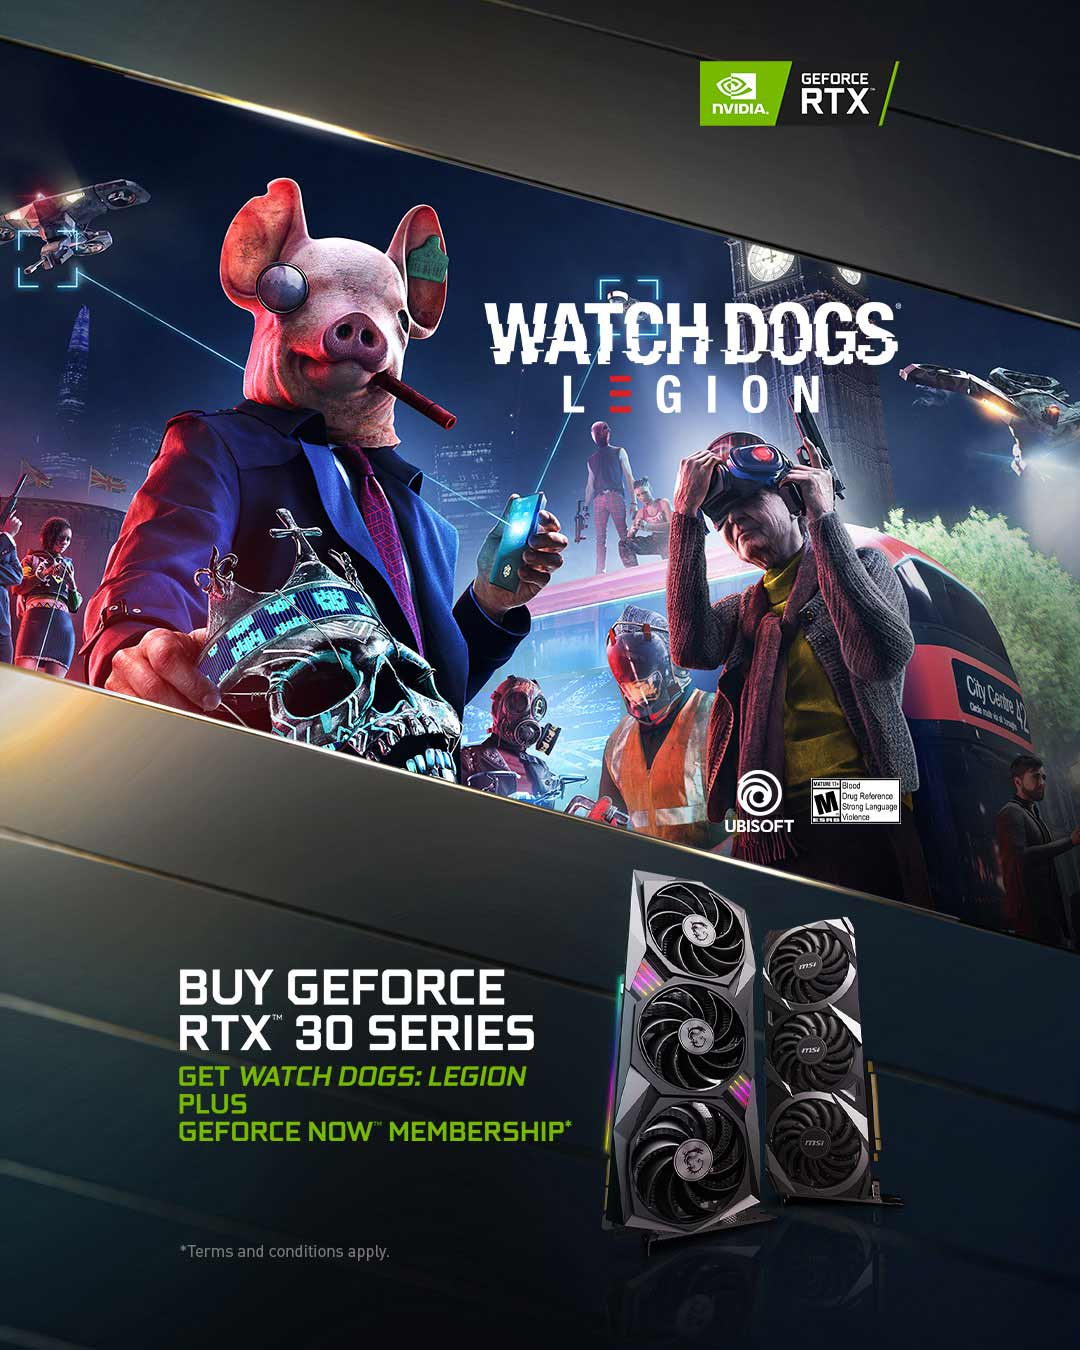 Watch Dogs Legion plus GeForce NOW